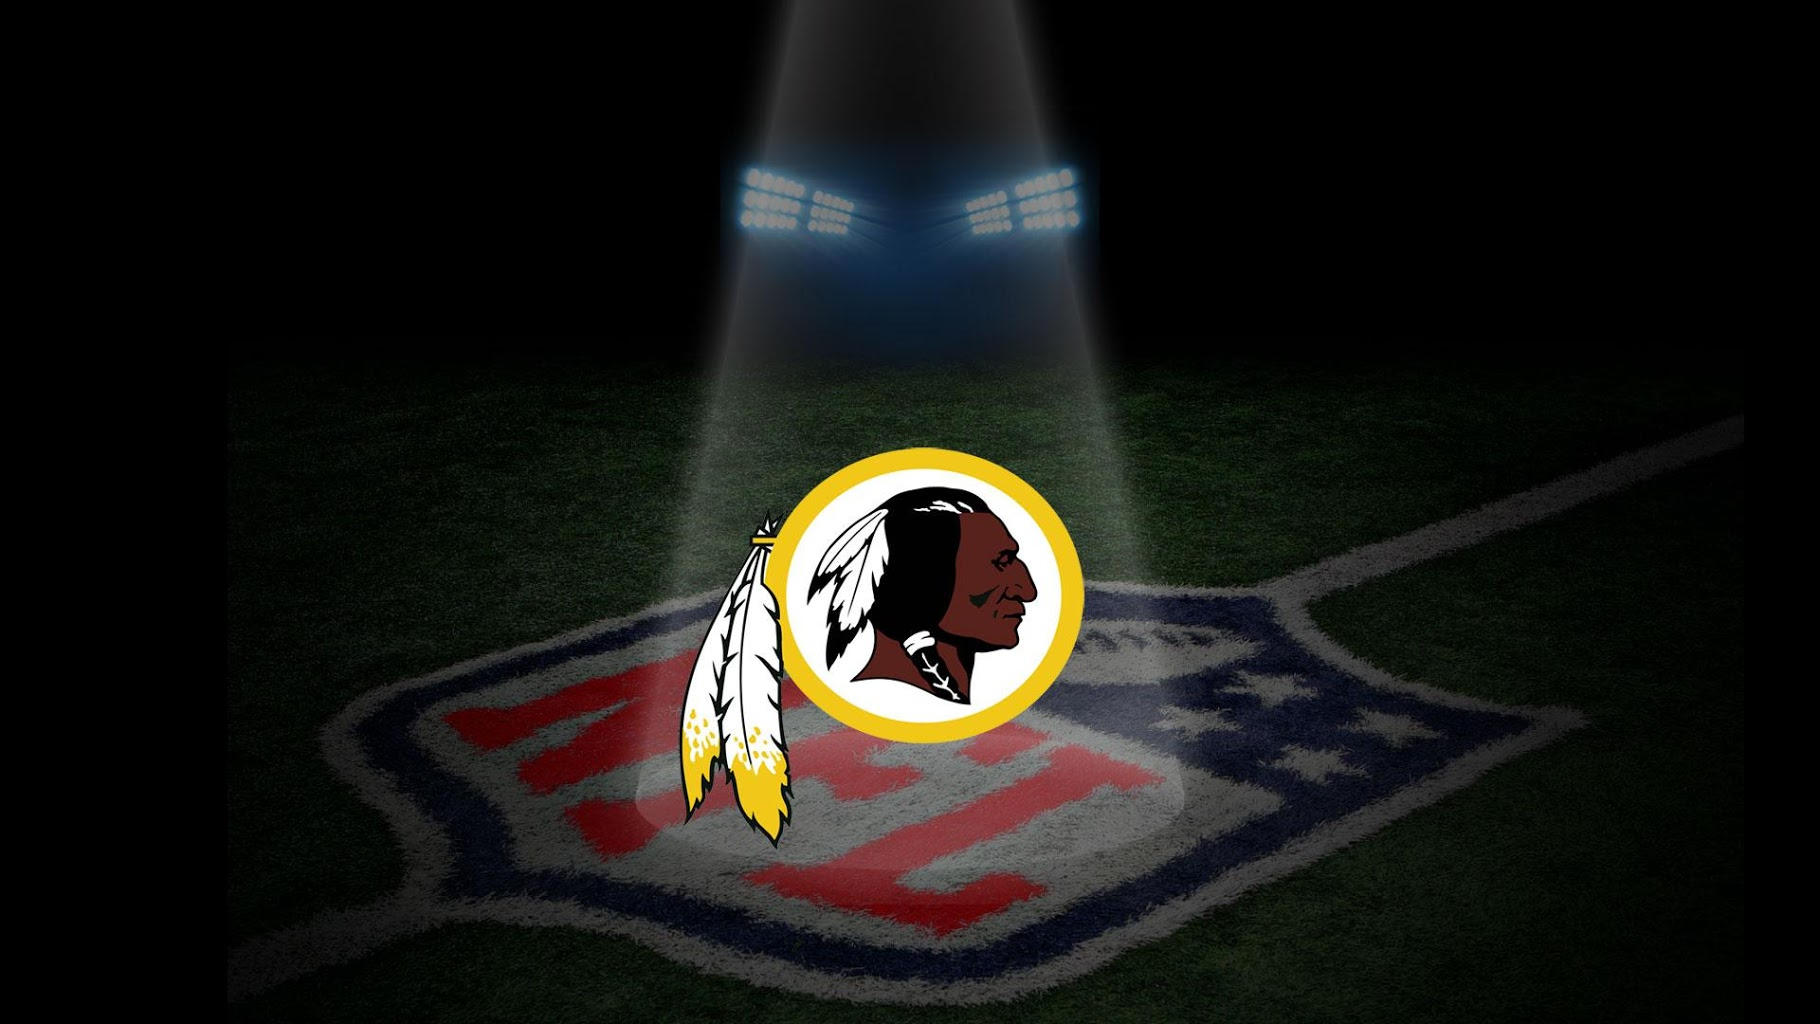 Washington Redskins Wallpaper 10 screenshot 0 1820x1024